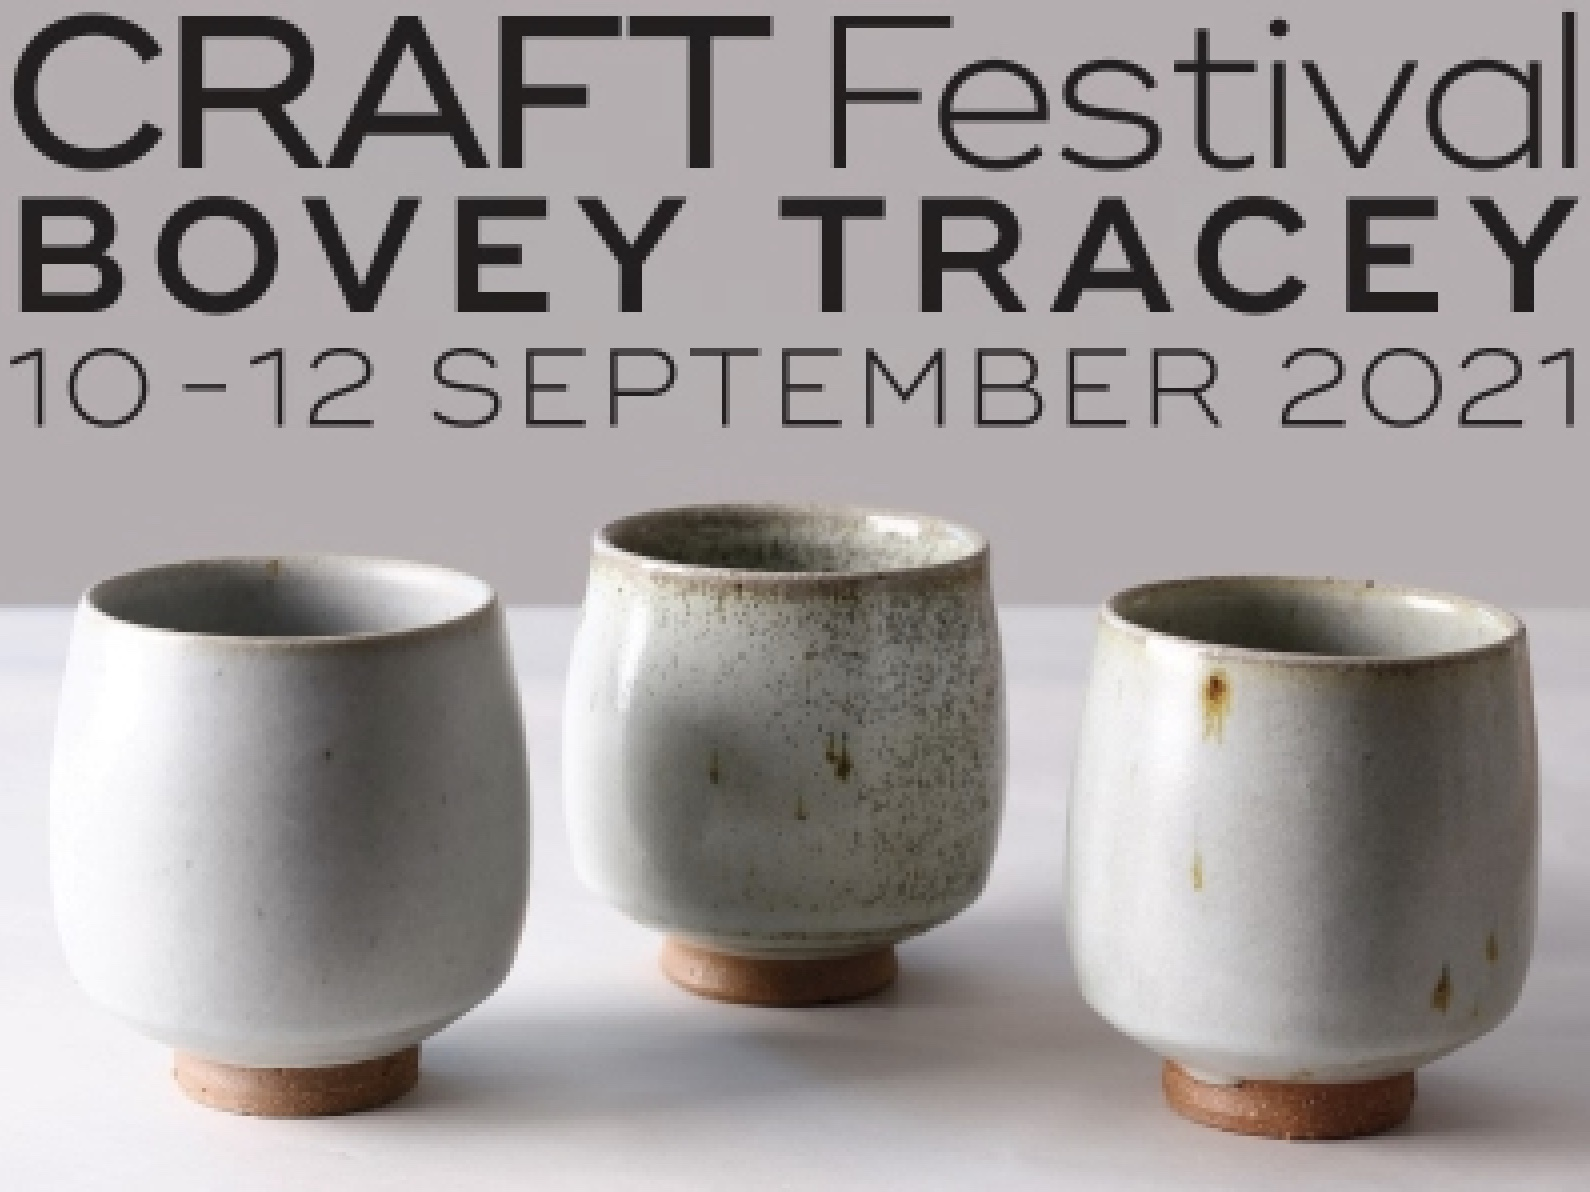 Craft Festival Bovey Tracey